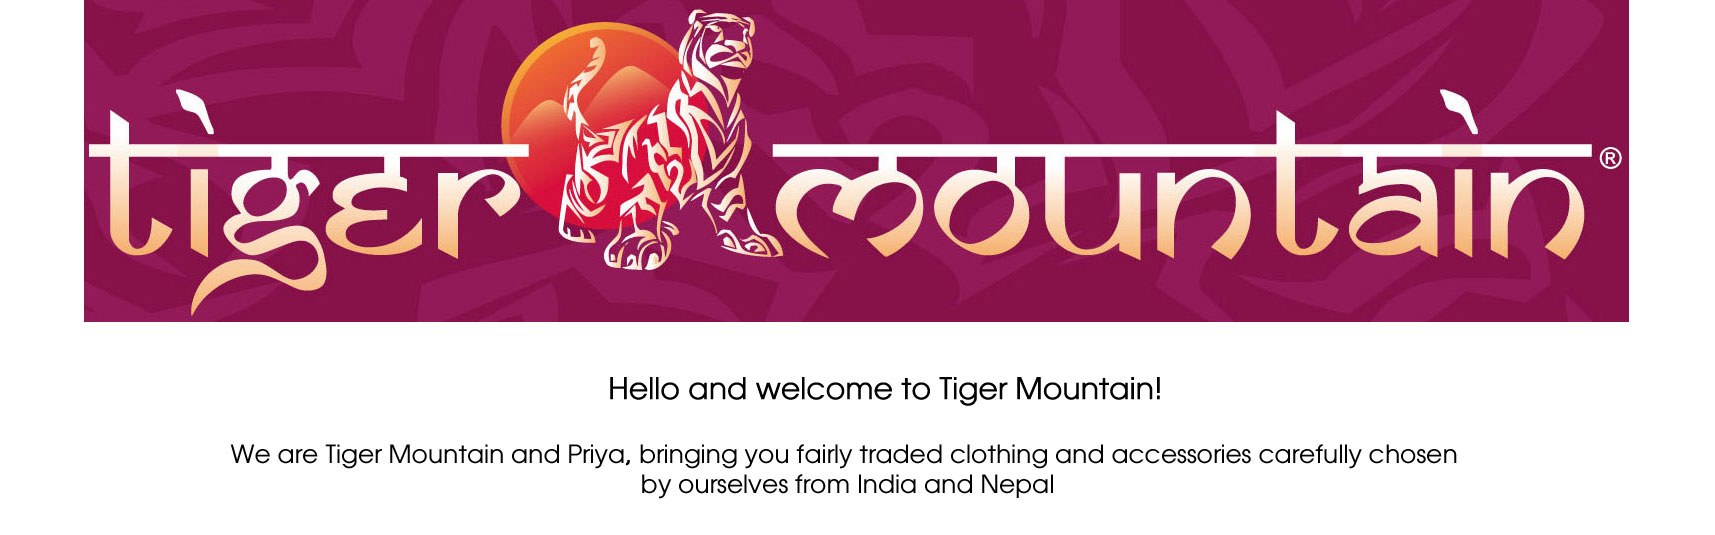 Welcome to Tiger Mountain, suppliers of fairly traded clothing and accessories from India and Nepal